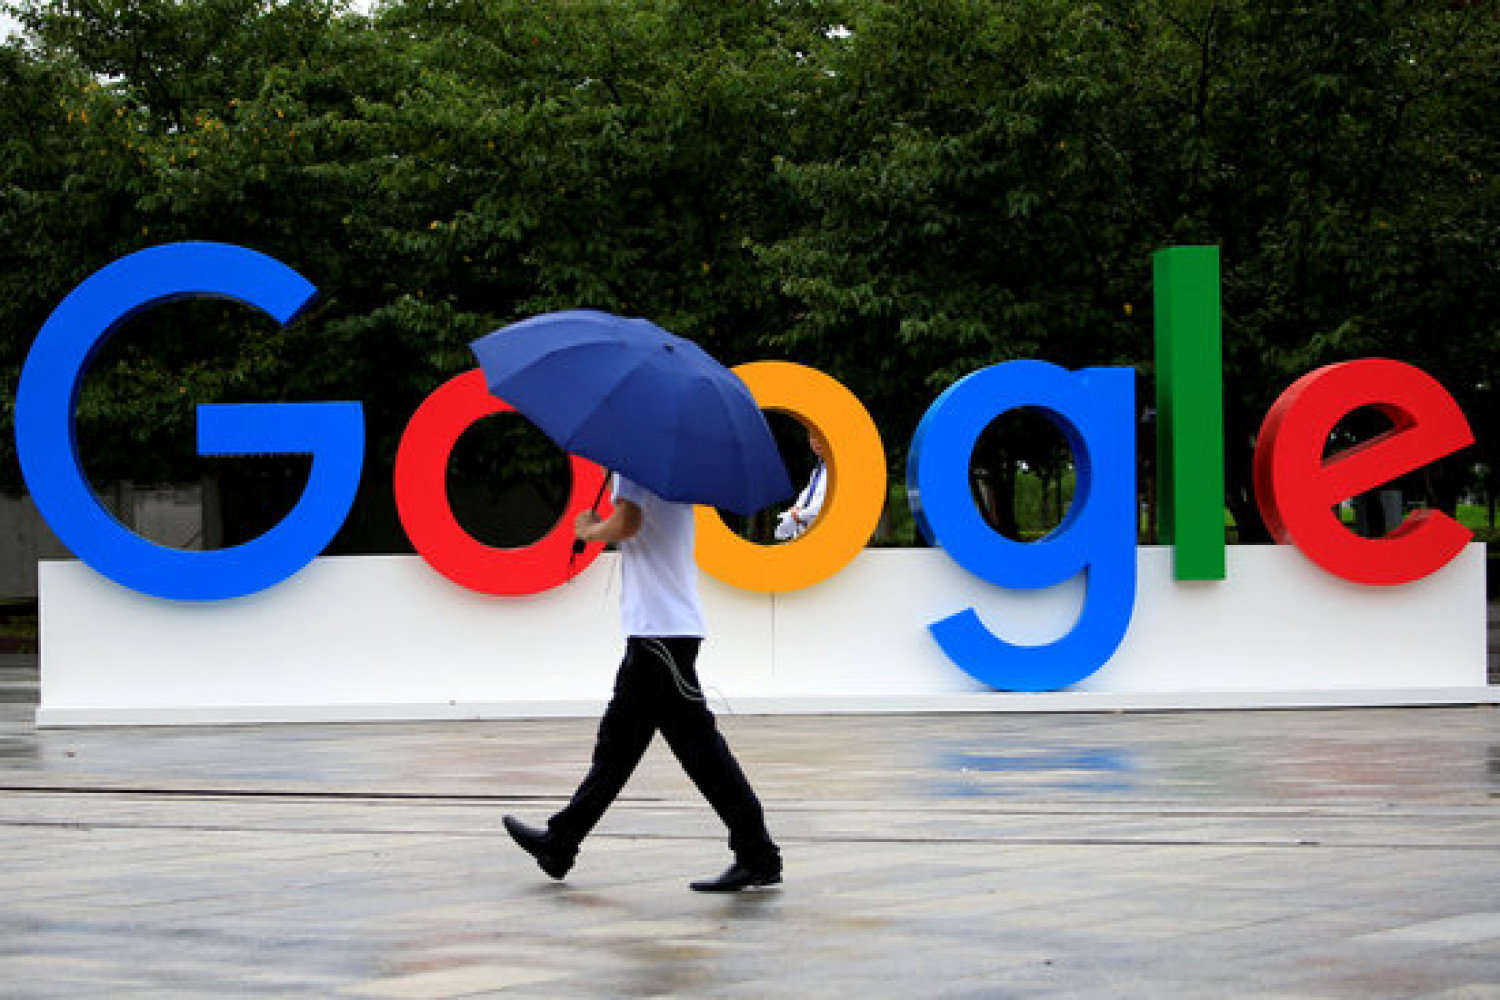 Letters spell 'Google' during the World Artificial Intelligence Conference in Shanghai (courtesy of Reuters)